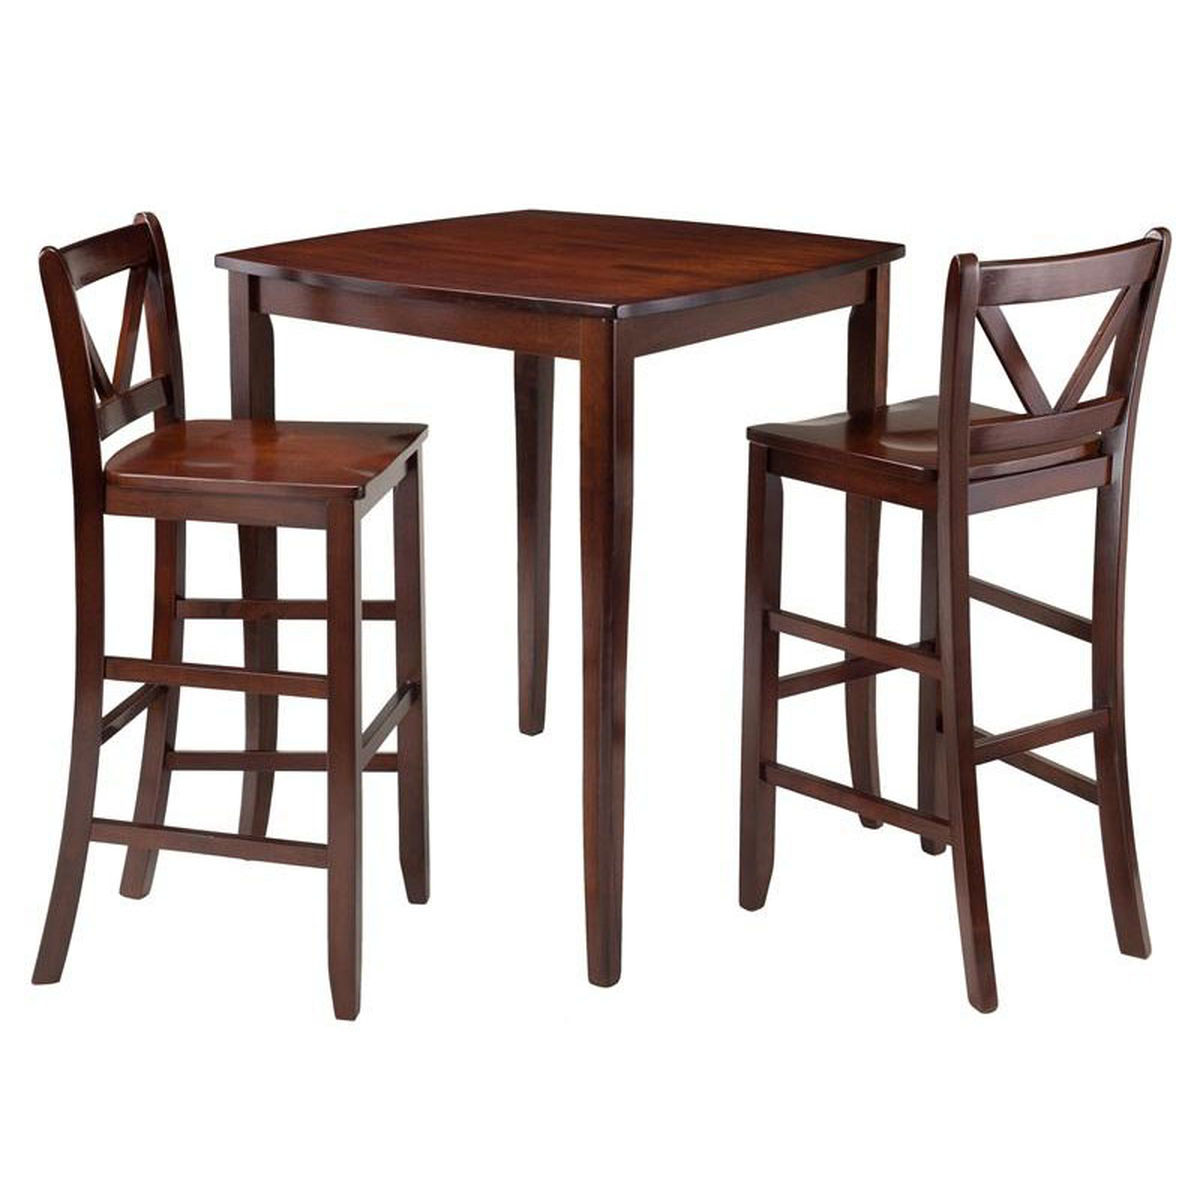 square dining table set bizchair winsome wood wwt main accent walnut our inglewood with barstools round glass small target tufted chair red wingback marble metal coffee chests and